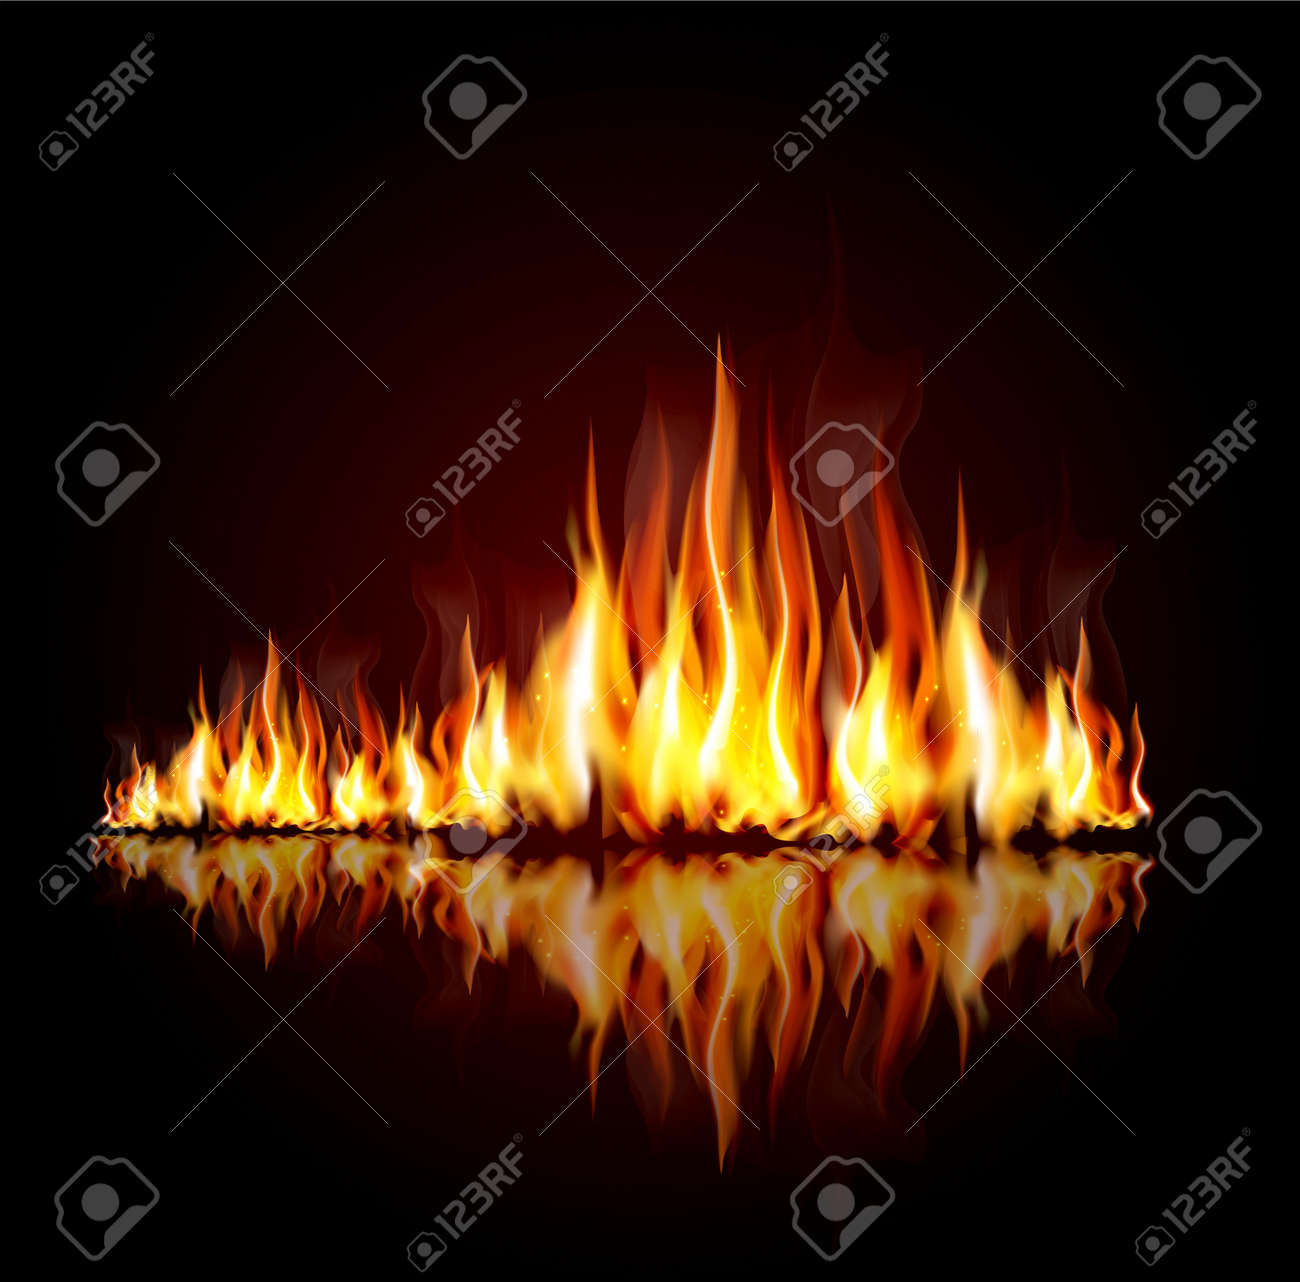 background with a burning flame Stock Vector - 12083032